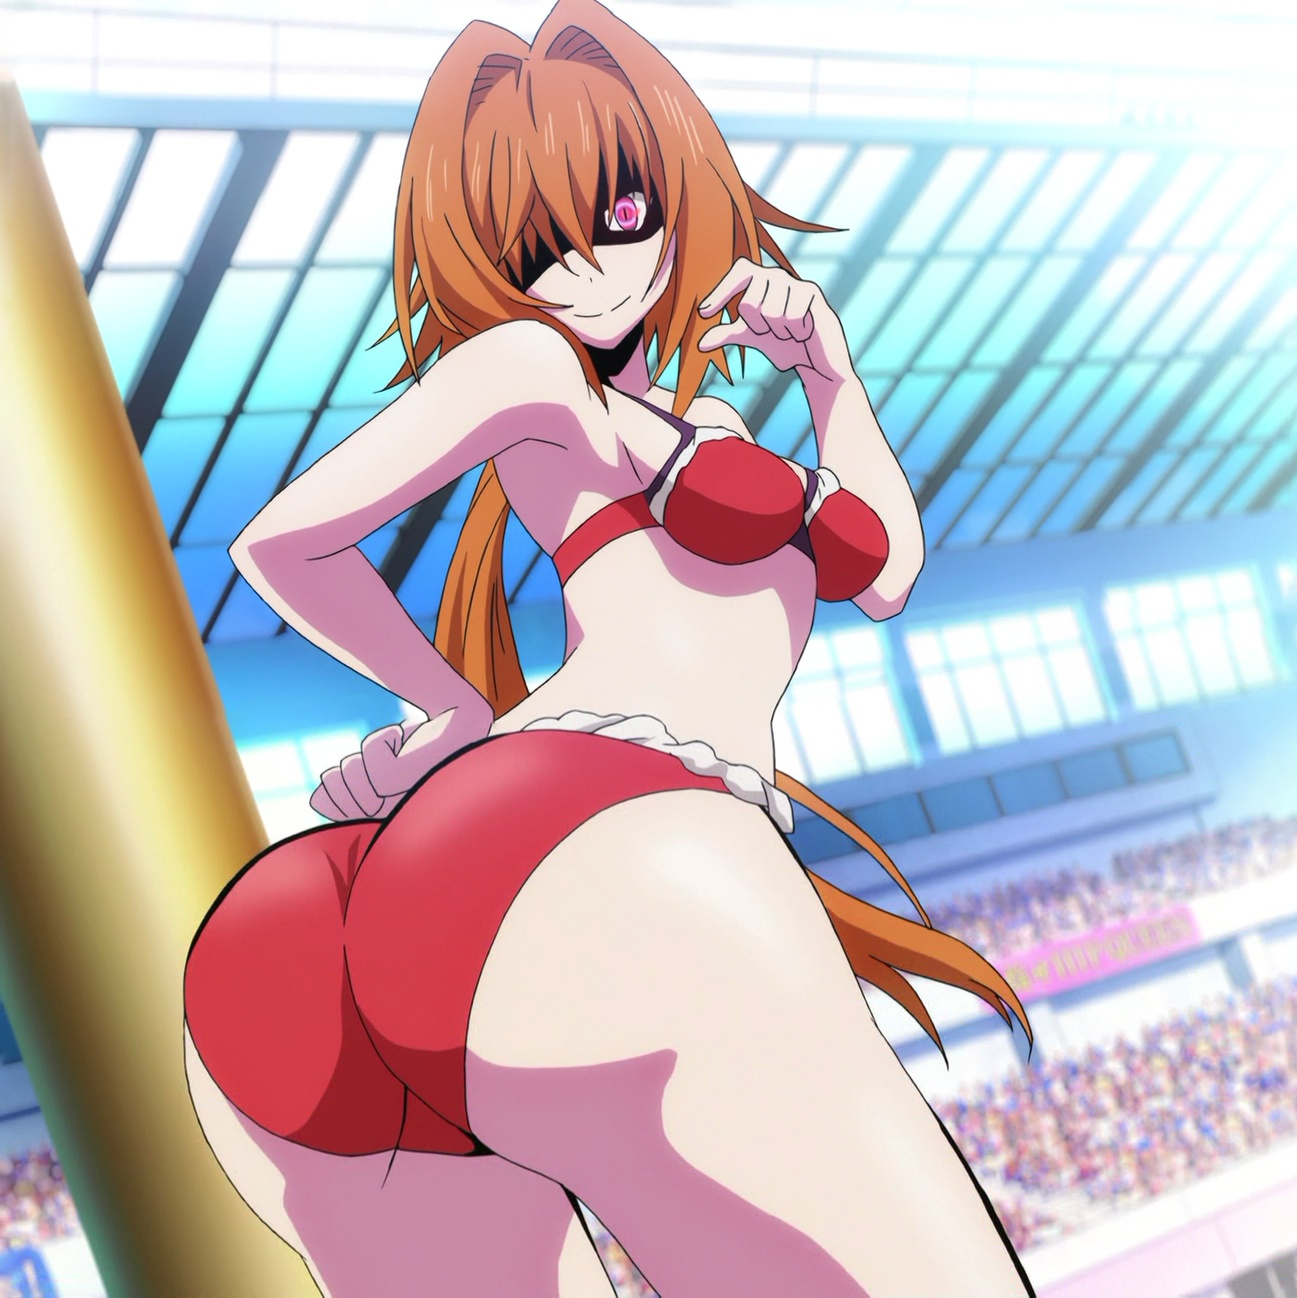 leopard-raws-keijo-09-raw-bs11-1280x720-x264-aac-mp4_000810-737_stitch_ac